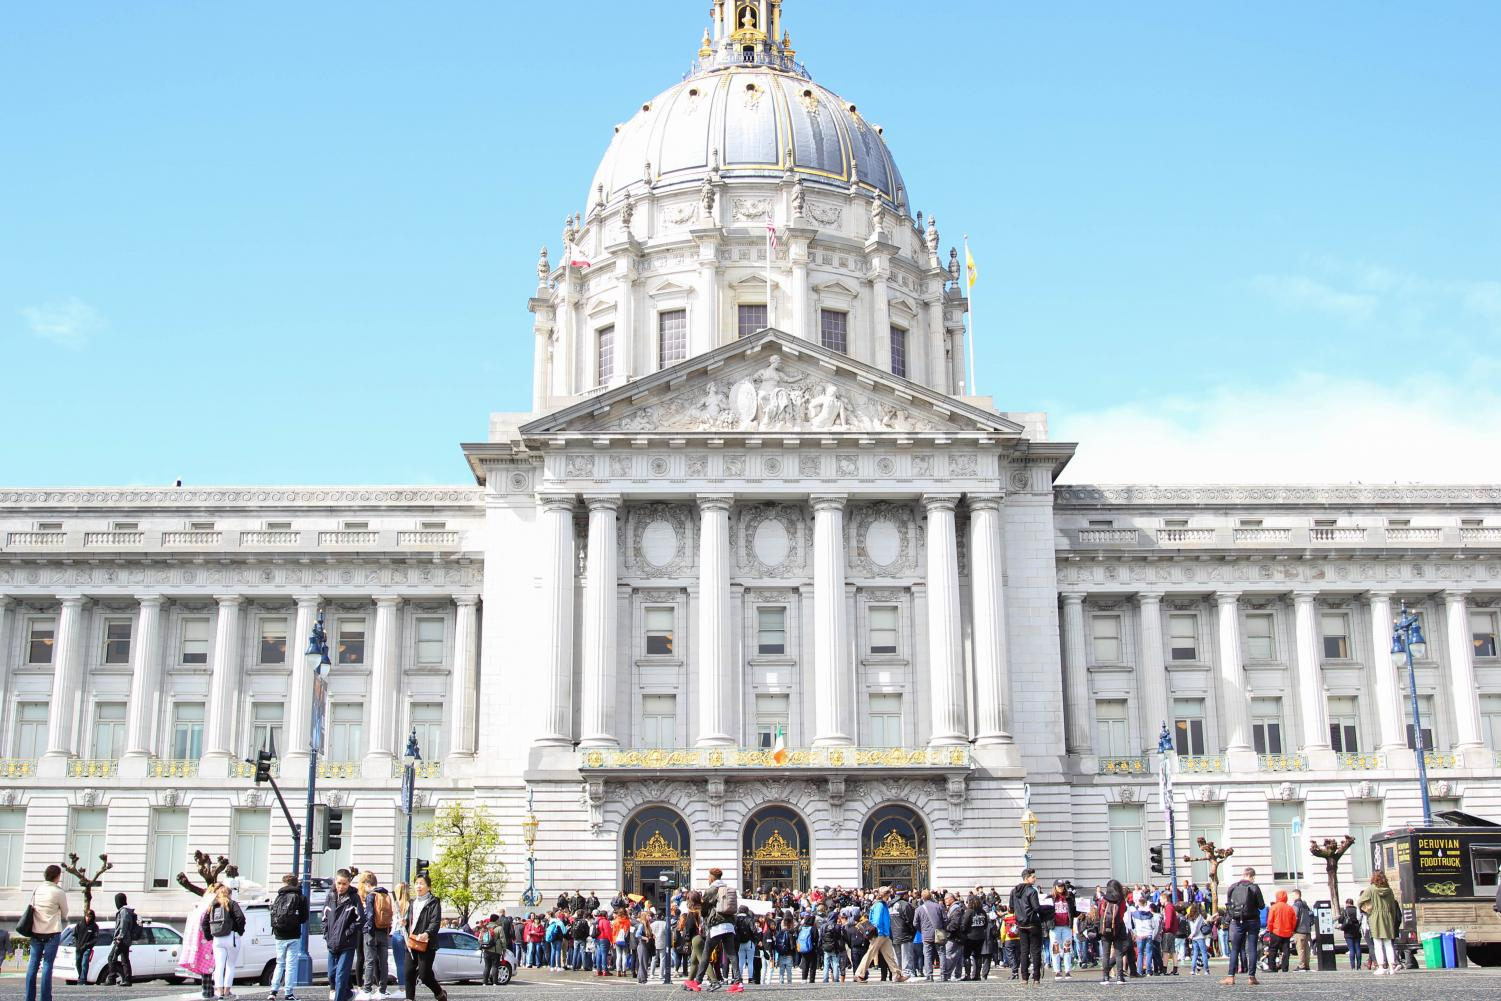 Students will be skipping school today in order to march to the San Francisco Federal Building as part of the Global Climate Strike.